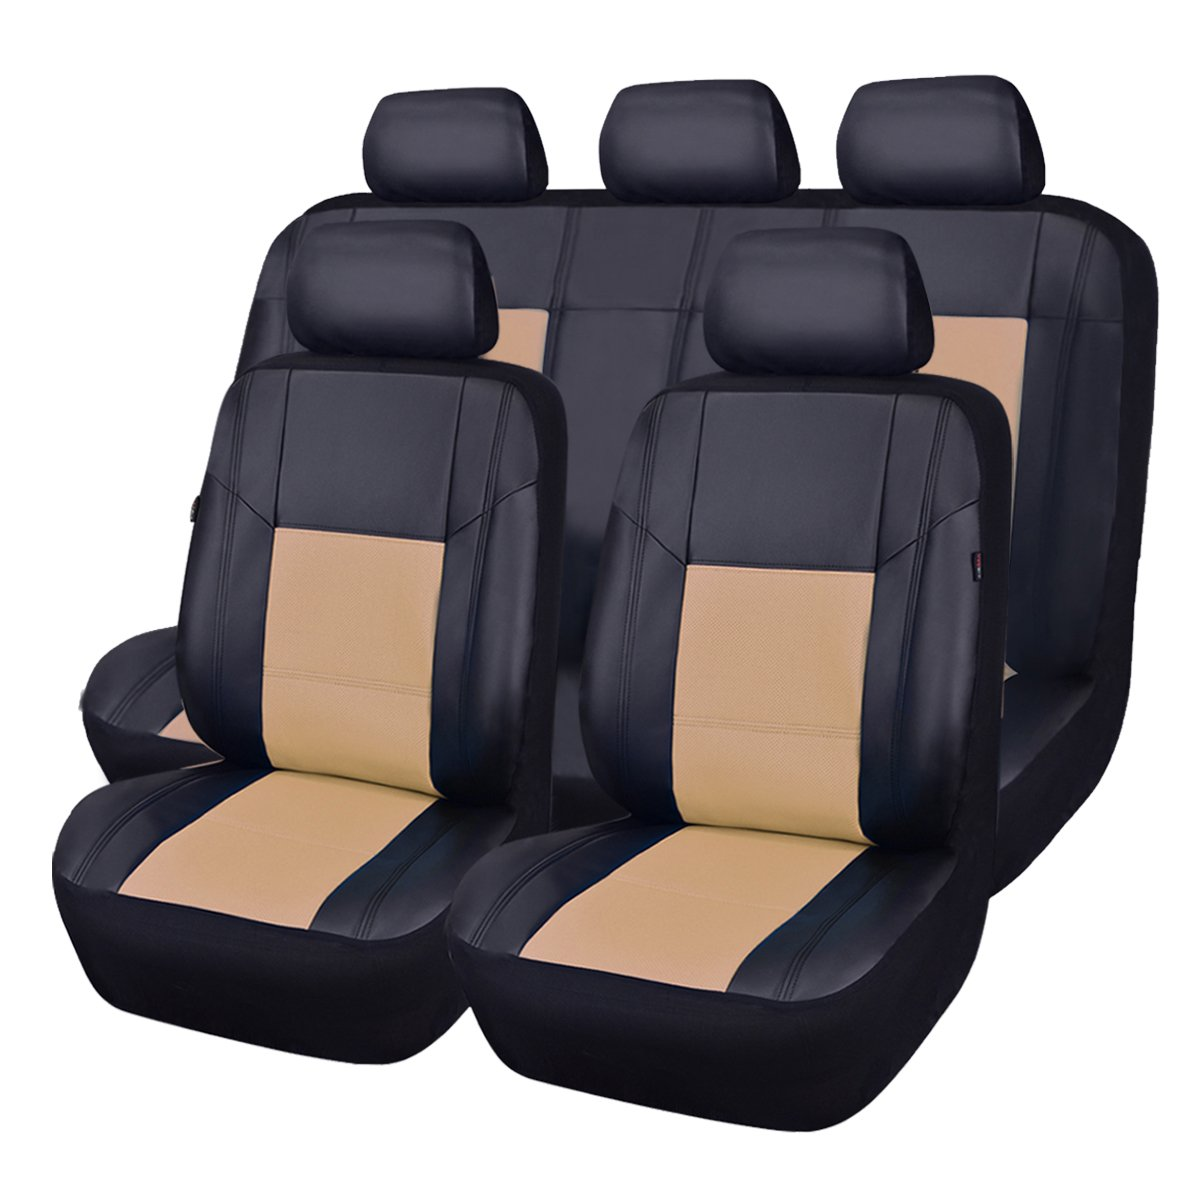 CAR PASS Skyline Leather Covers